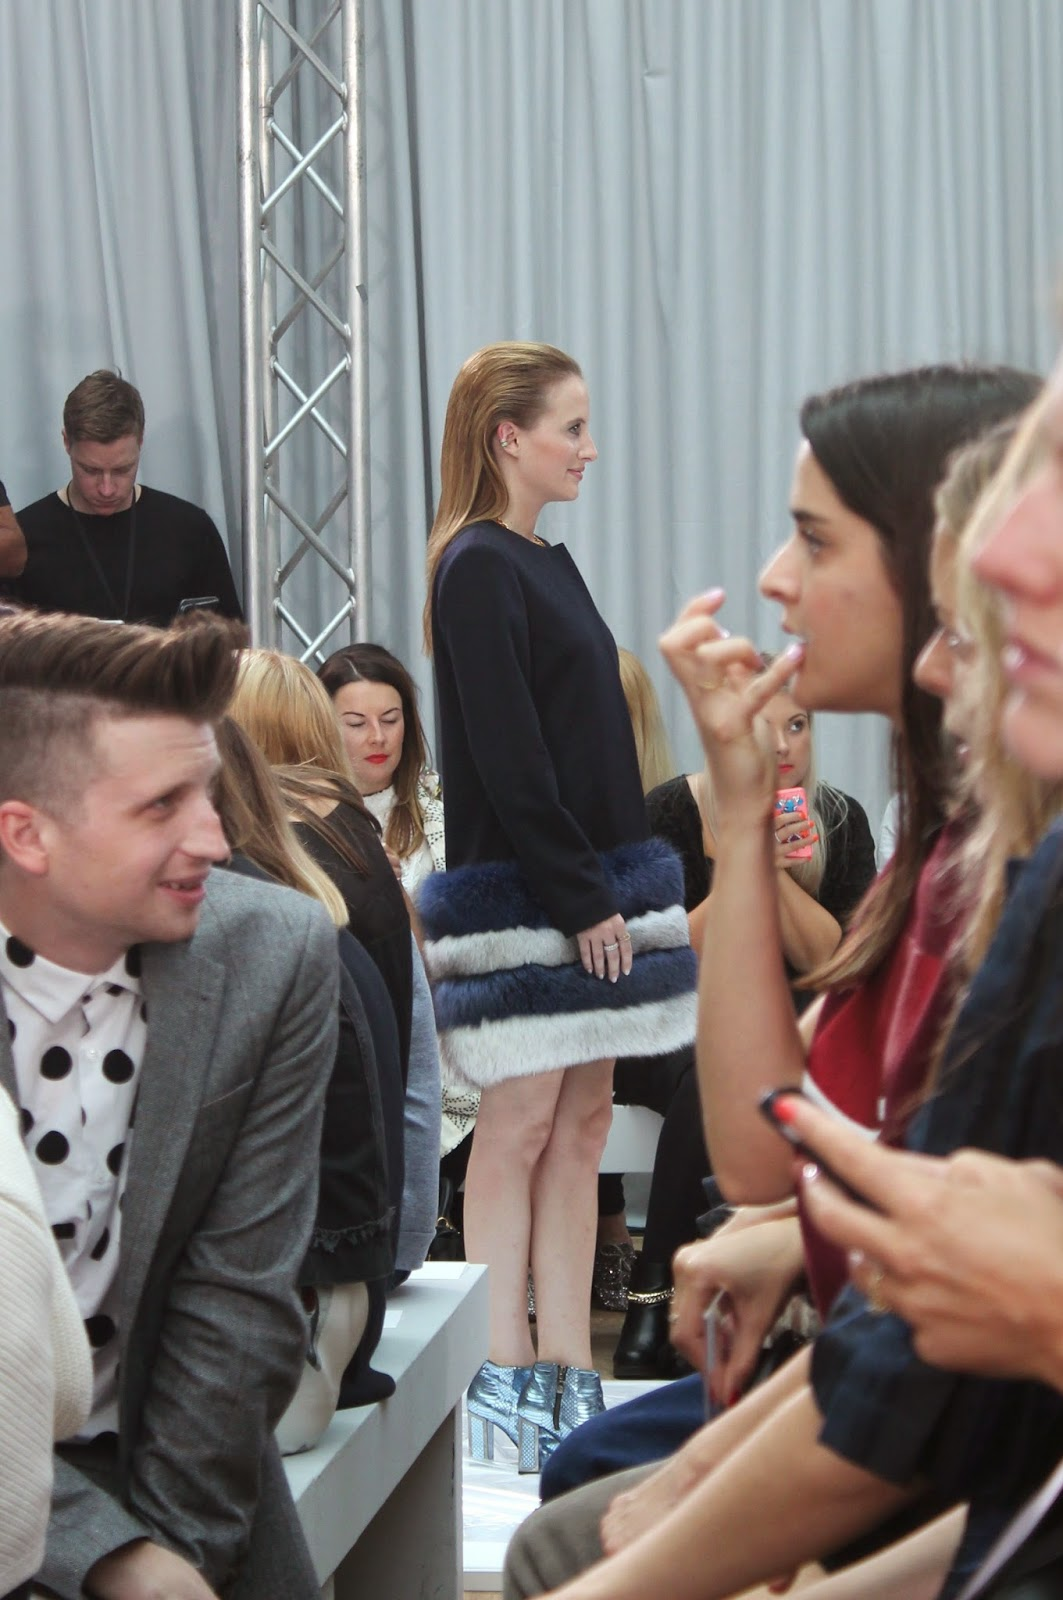 london-fashion-week-2014-lfw-DAKS-show-catwalk-spring-summer-2015-models-clothes-fashion-frow-rosie-fortescue-made-in-chelsea